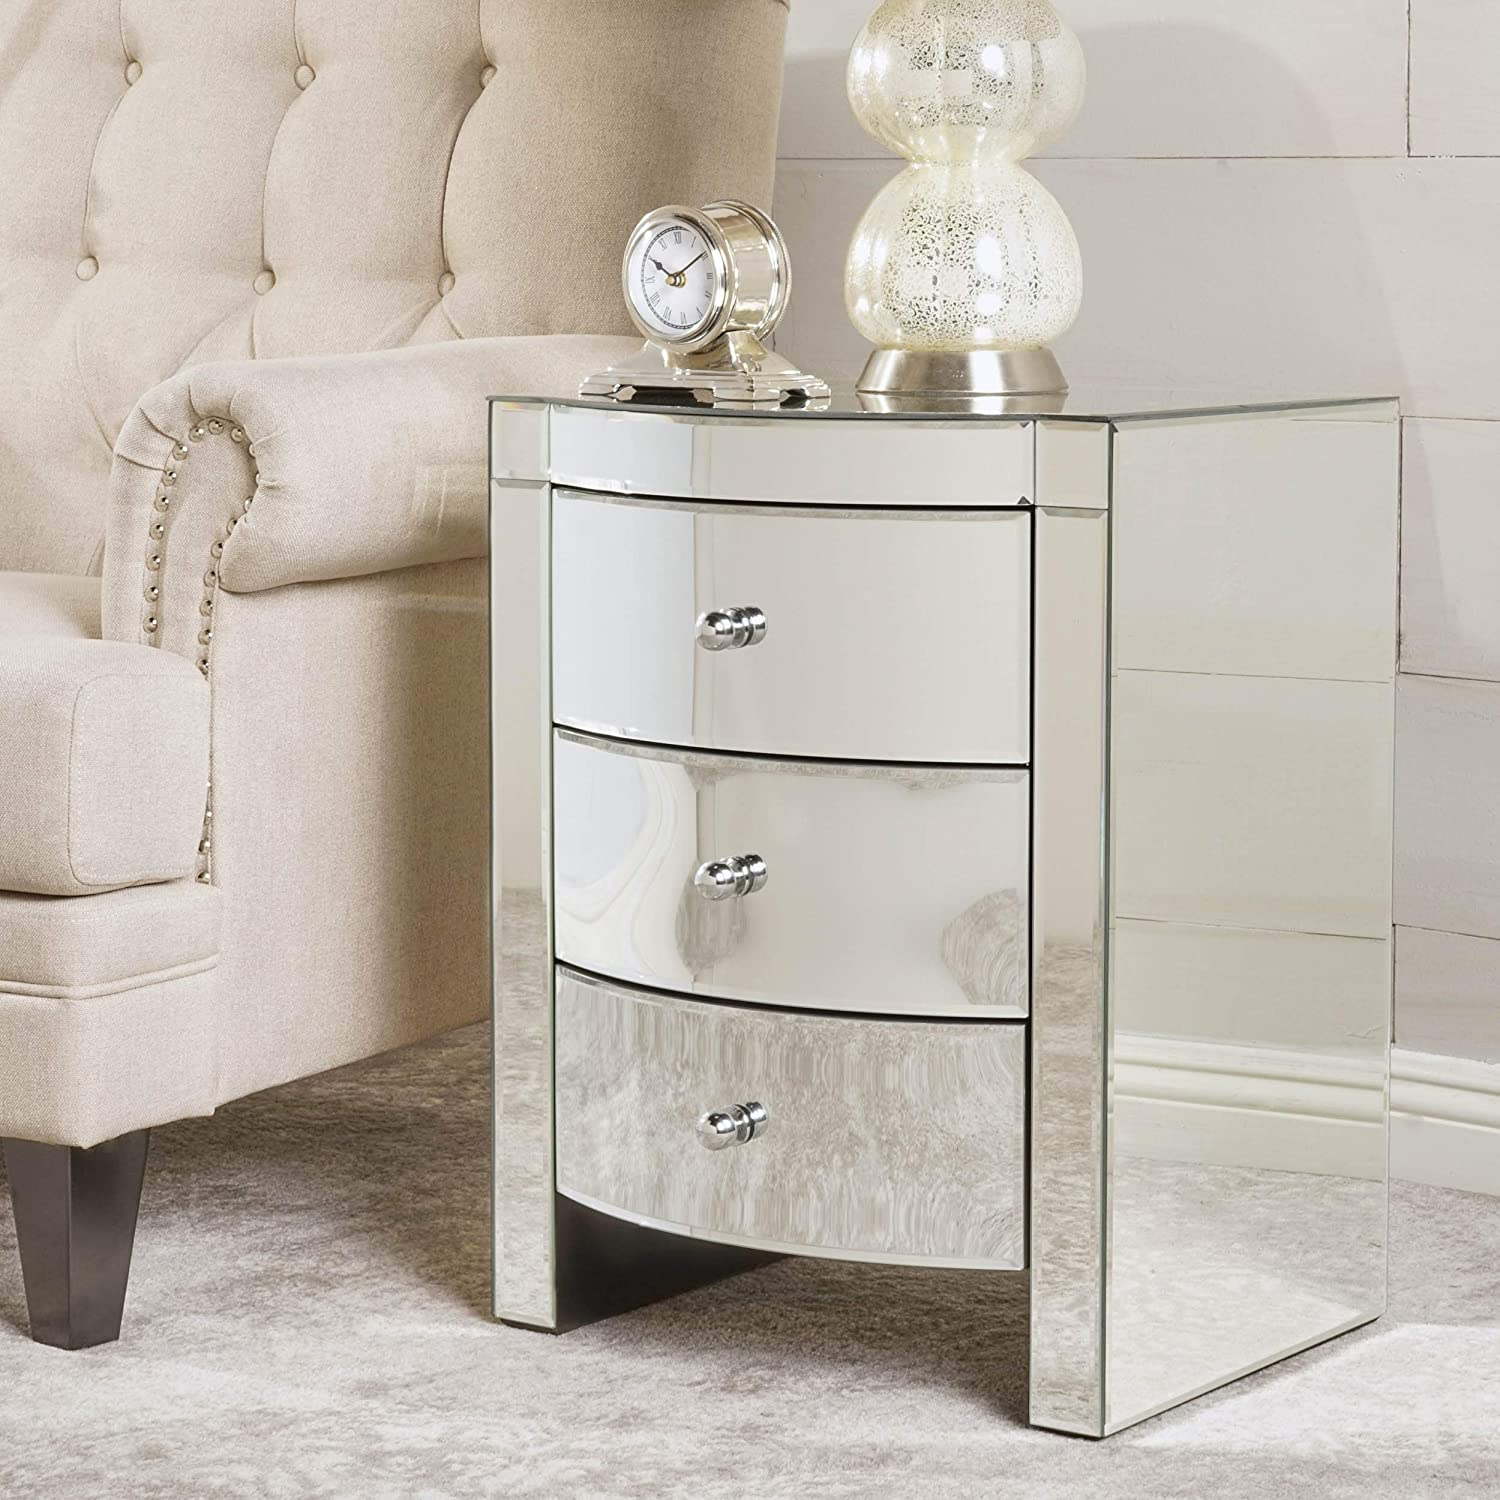 Christopher Knight Home 295467 Cabinet, Clear